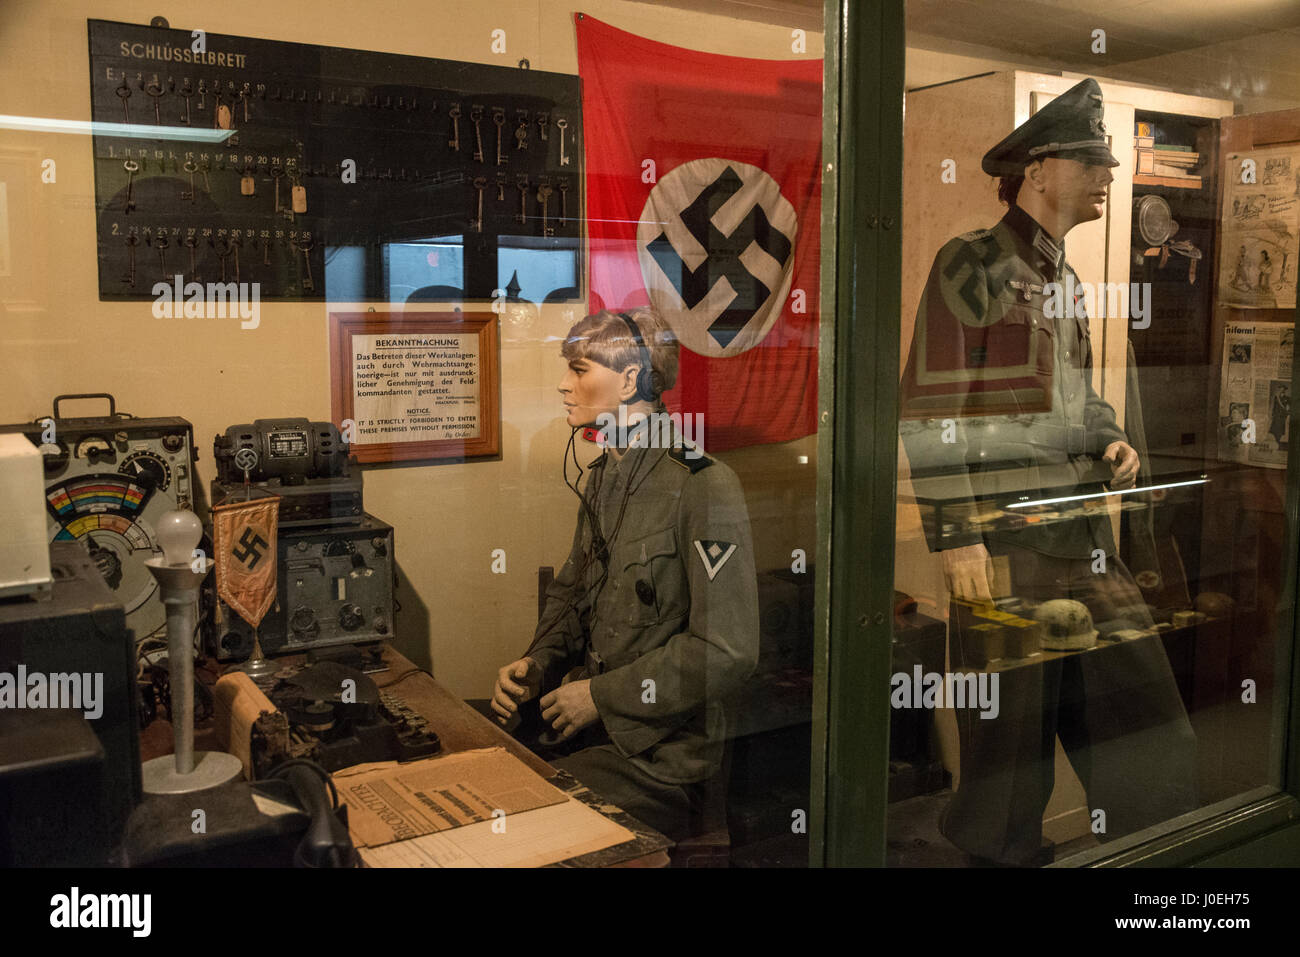 WW11 German radio station on display at the La Valette Underground Military museum in St.Peter Port in Guernsey - Stock Image